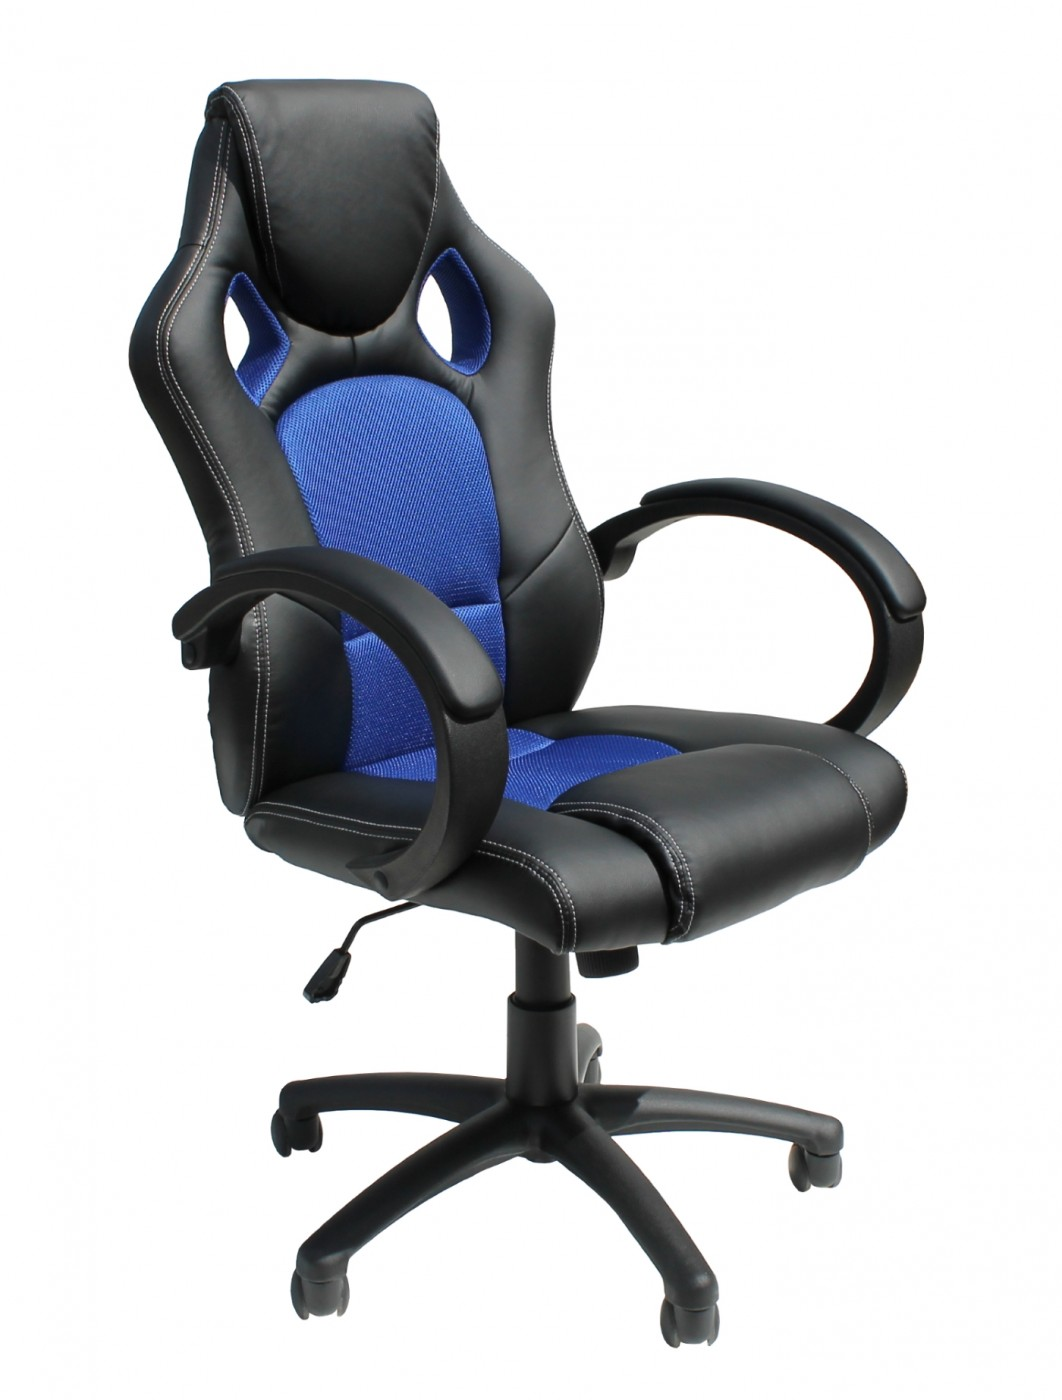 office chair video game true innovations costco gaming chairs alphason daytona aoc5006blu